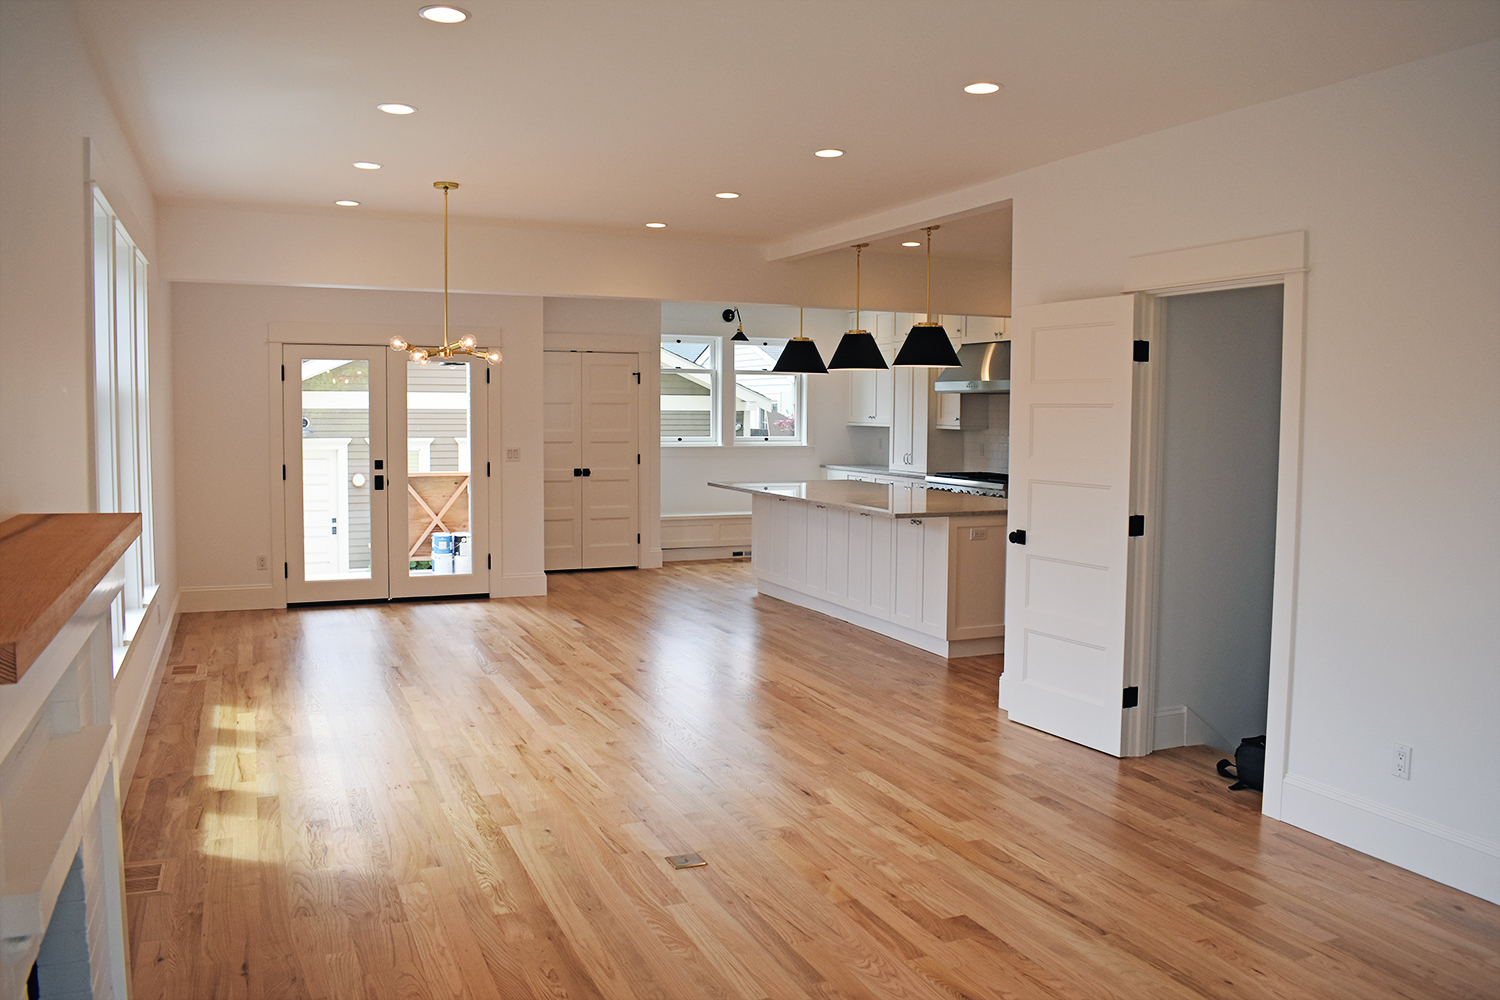 Interior and Kitchen Remodel Complete